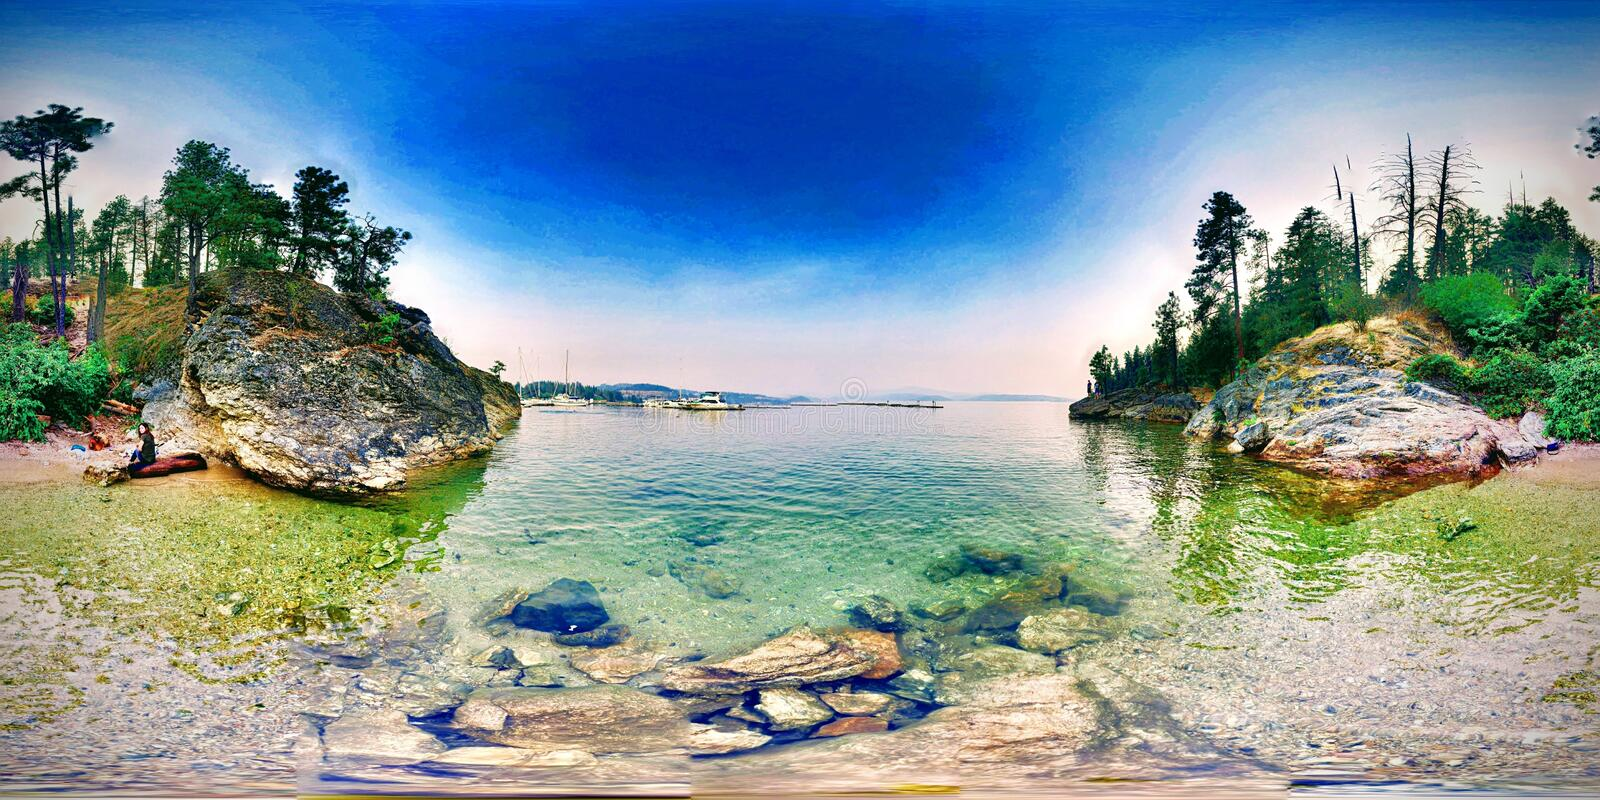 Electra Lake Love 360 stockbilder